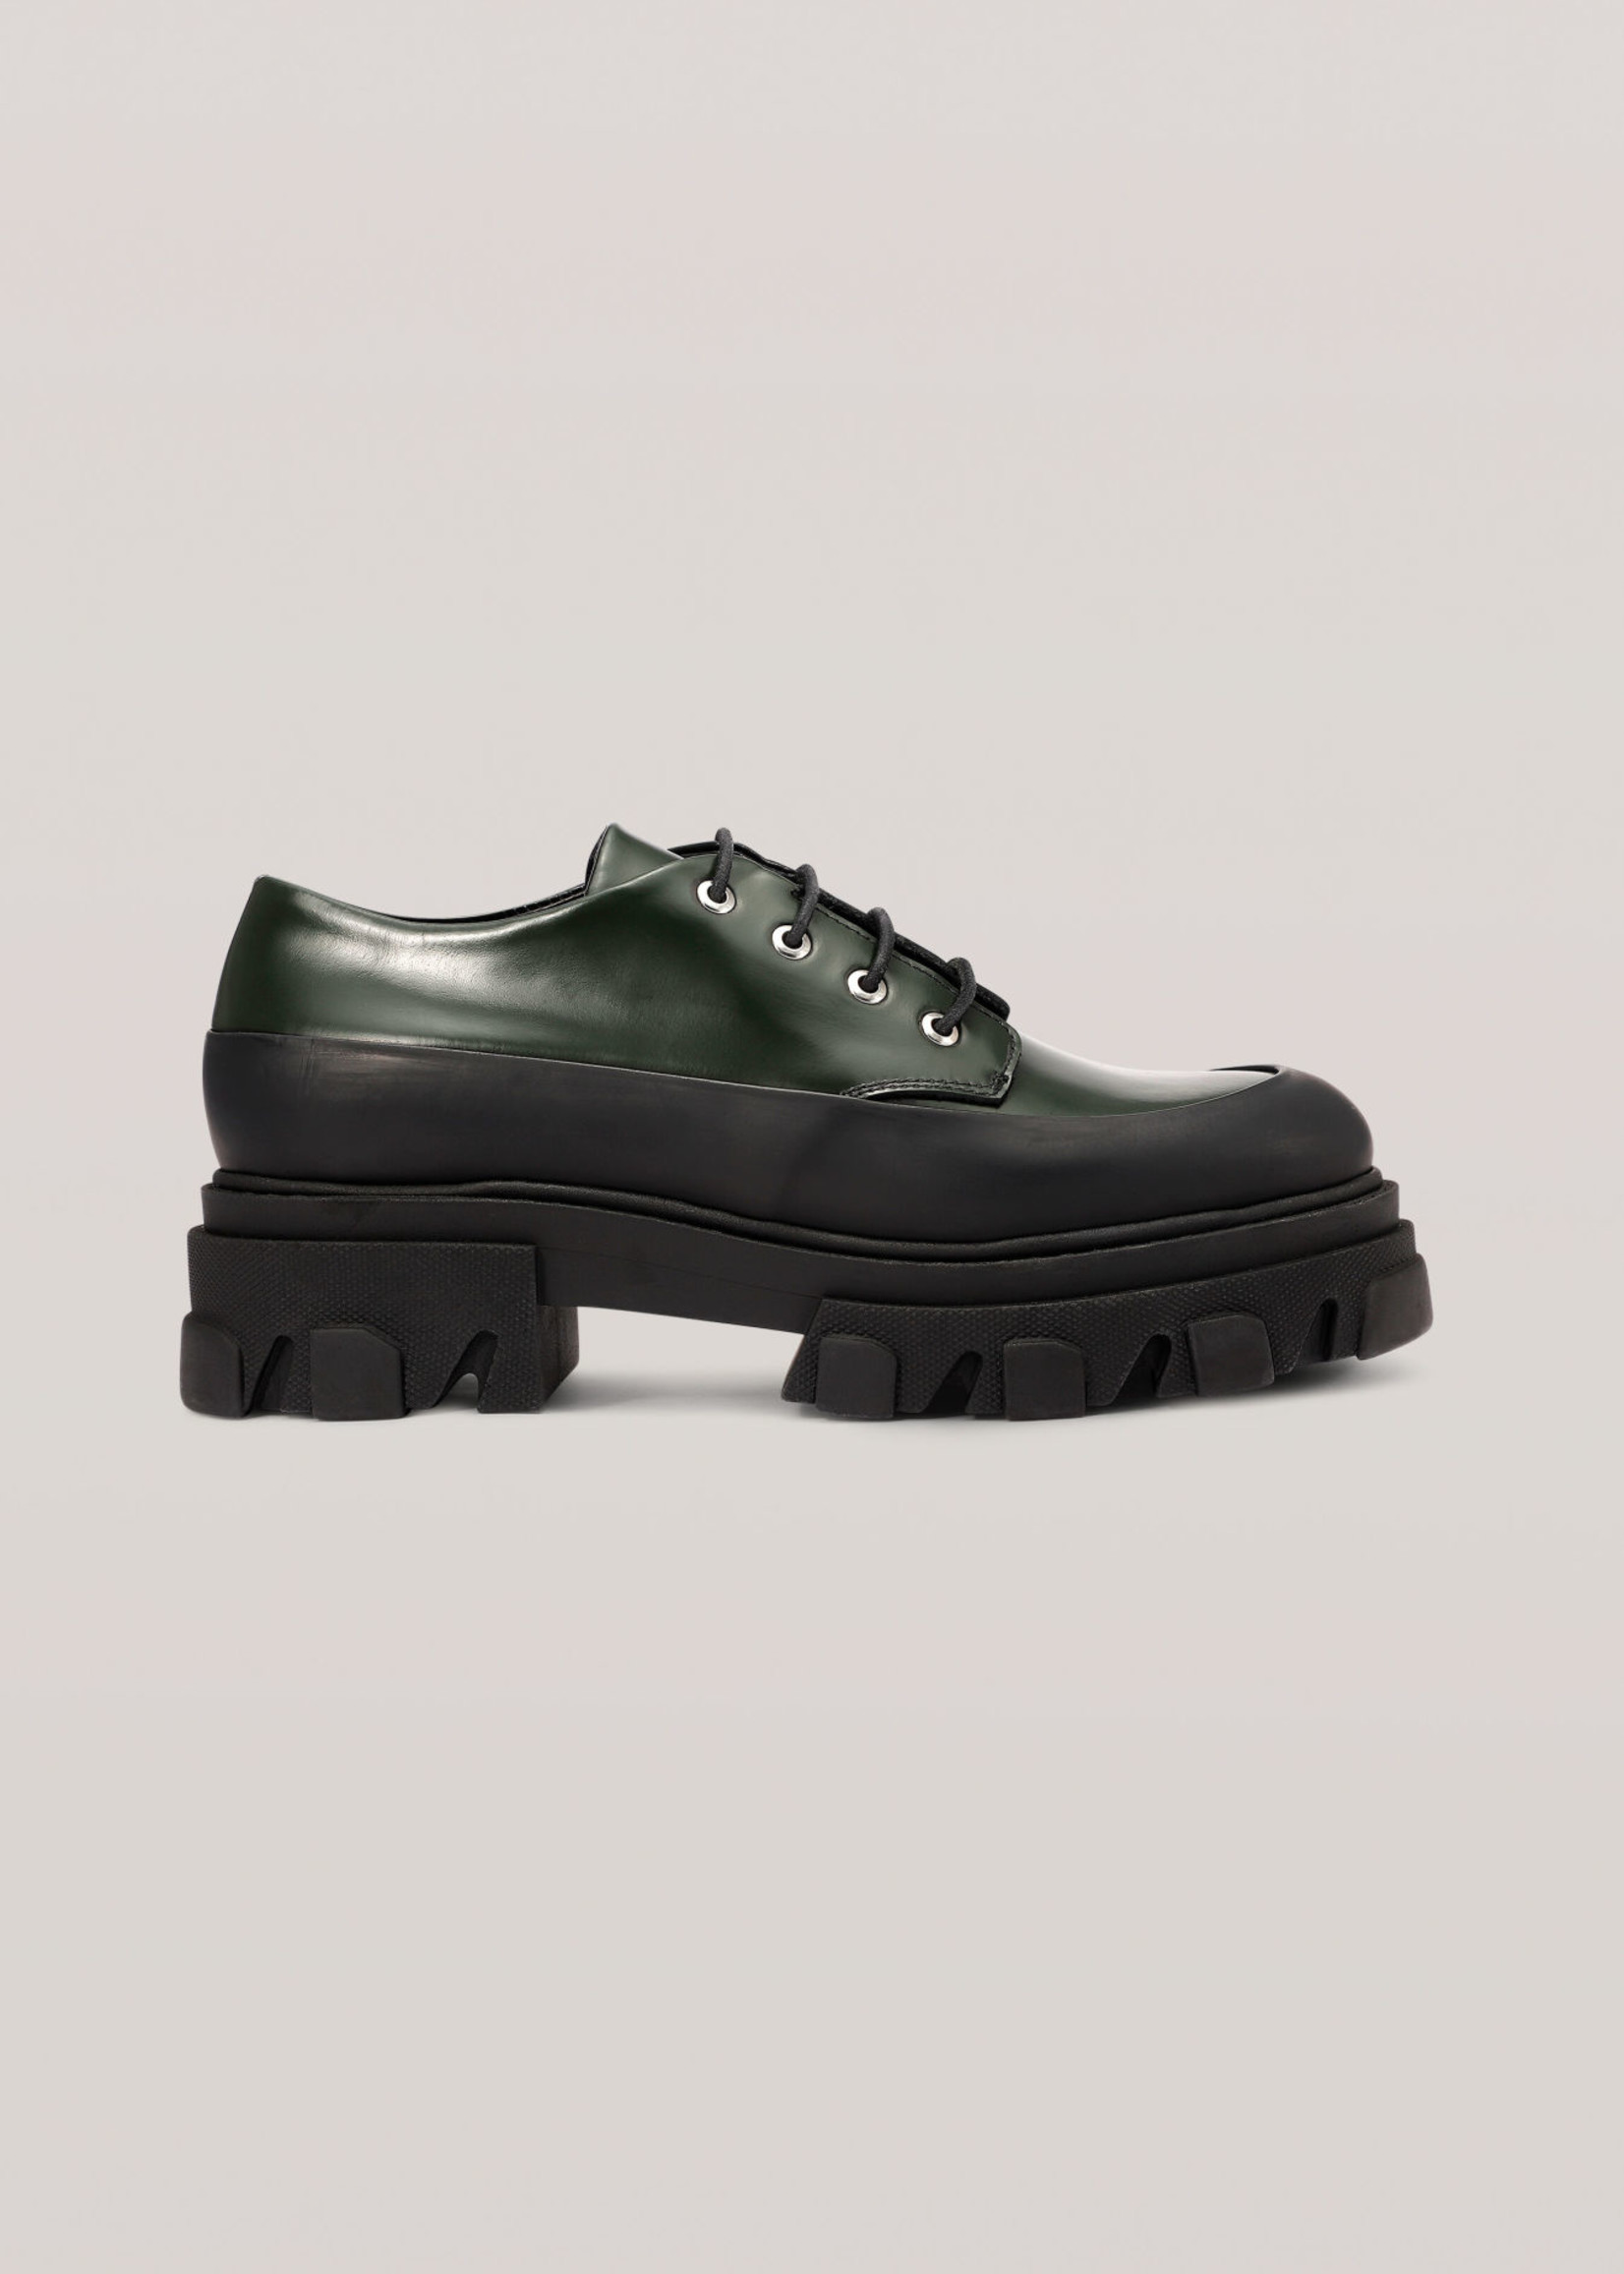 GANNI Lug Sole Oxford in Dark Green